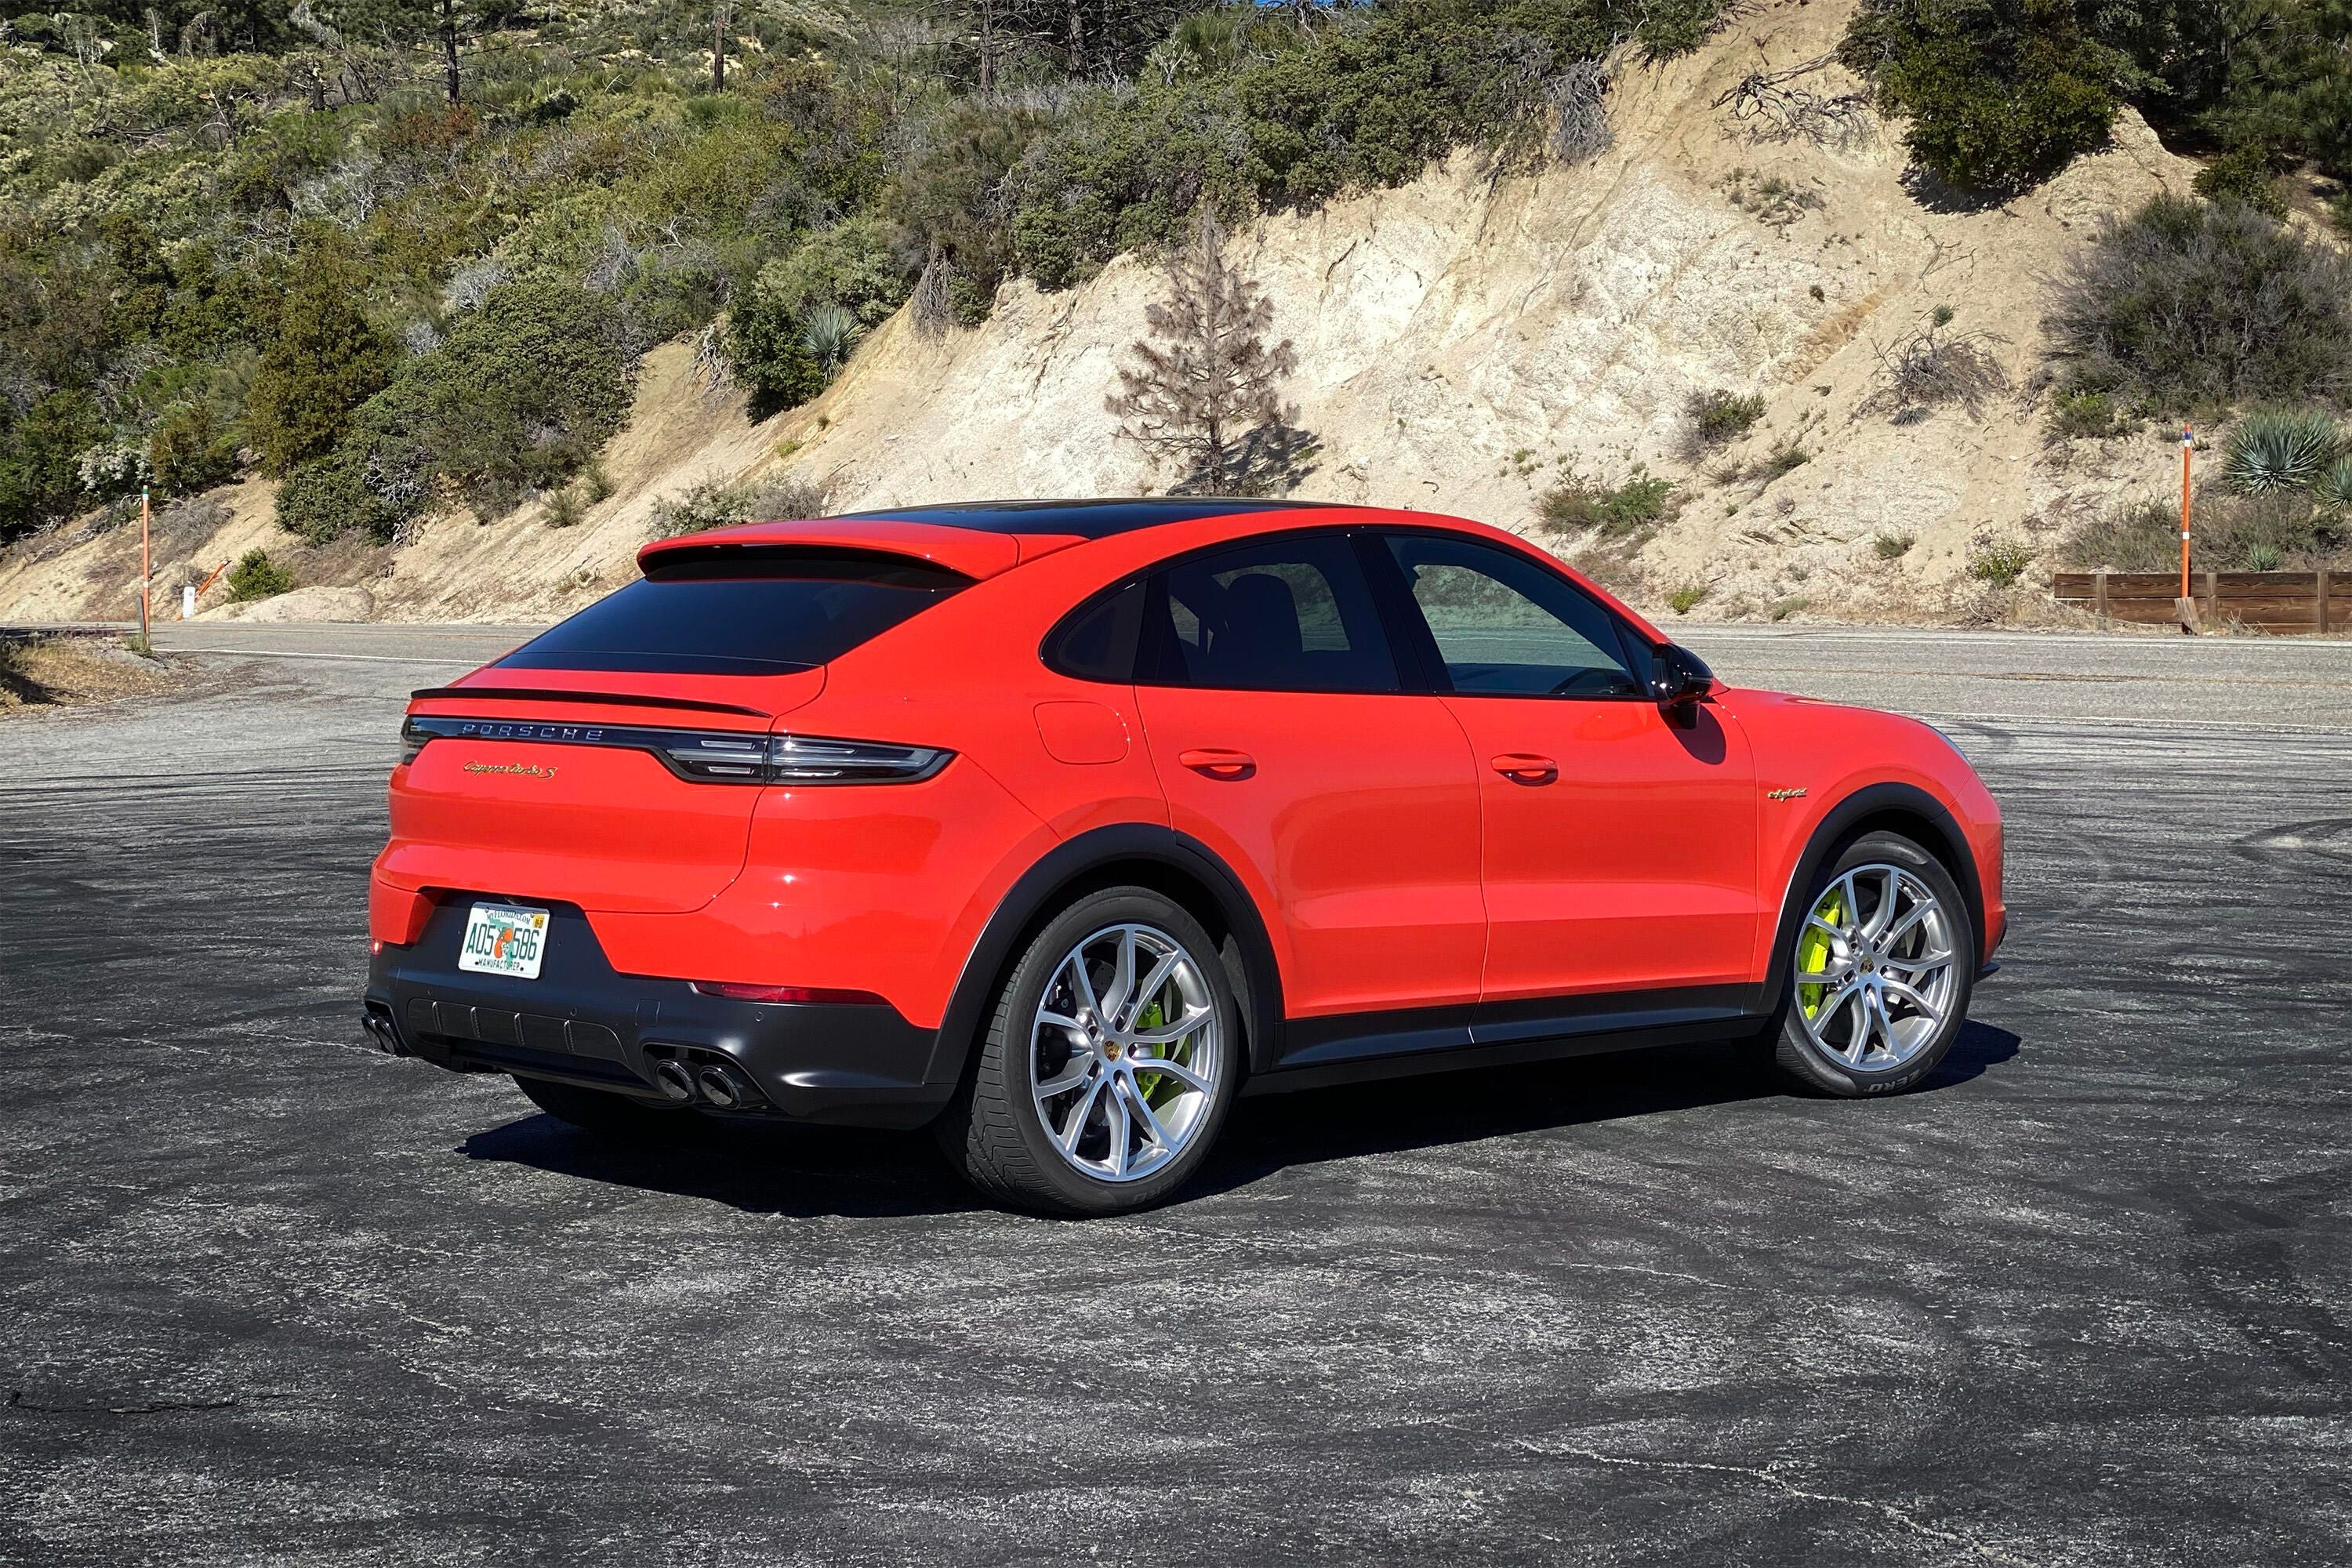 2020 Porsche Cayenne Turbo S E Hybrid Coupe Review Absurd But Like In A Good Way Roadshow